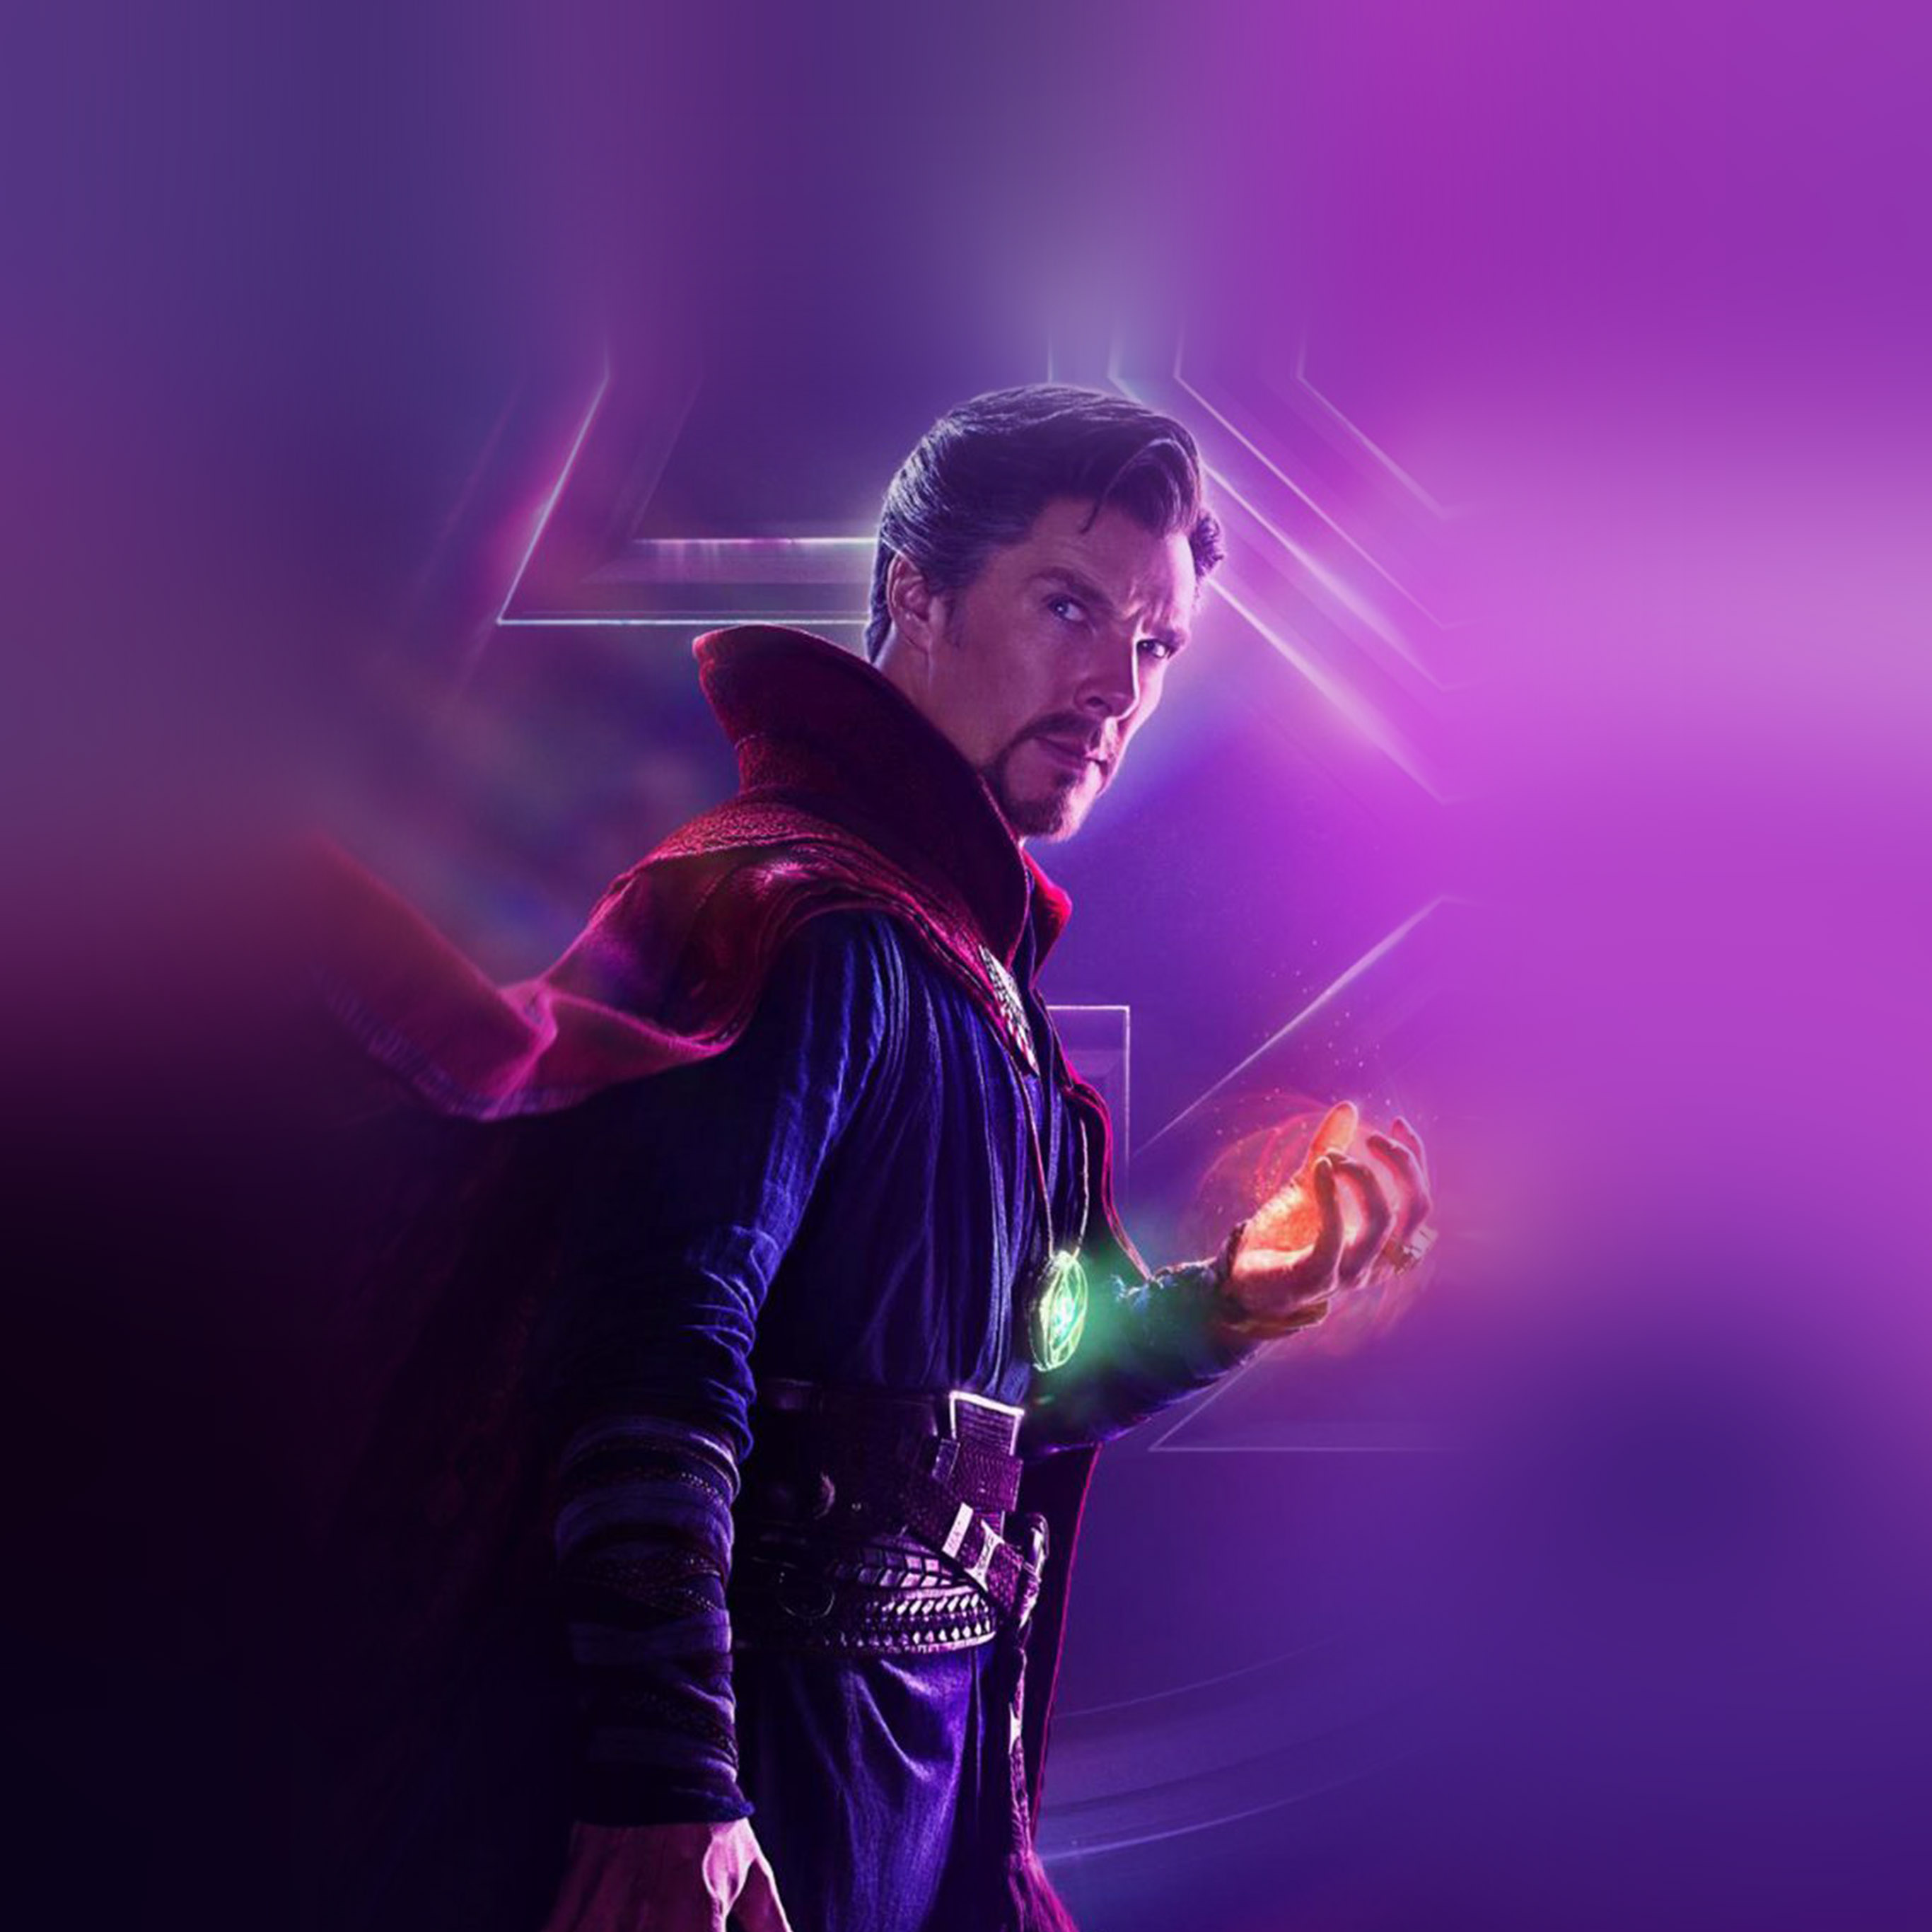 Be93 Avengers Doctor Strange Film Infinitywar Marvel Hero Art Wallpaper